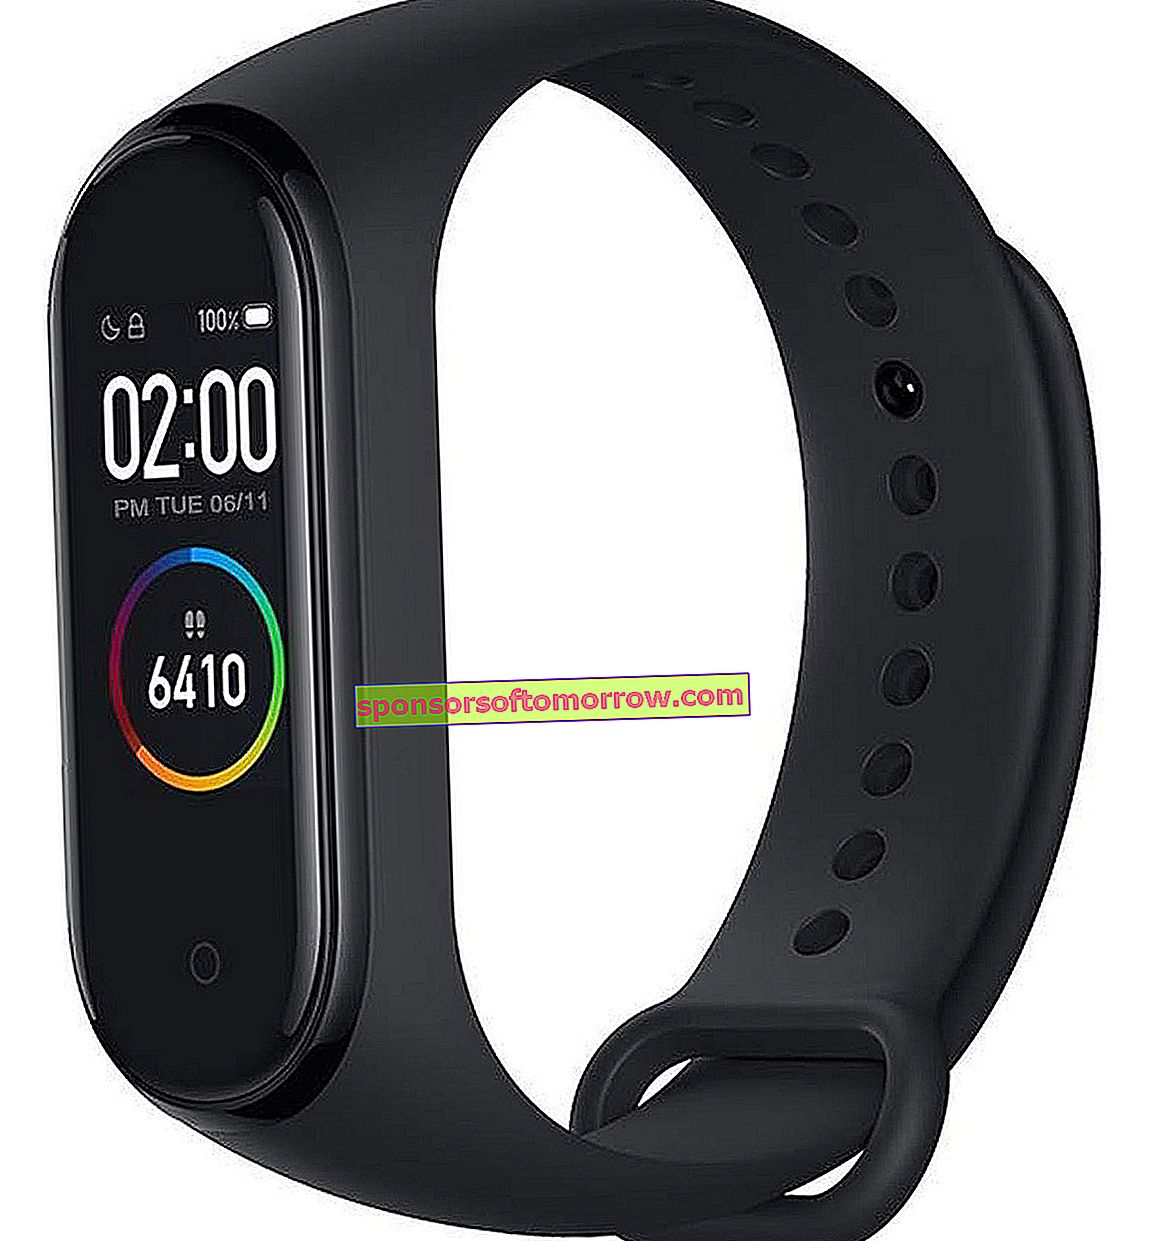 8 apps to get the most out of the Xiaomi Mi Band 1